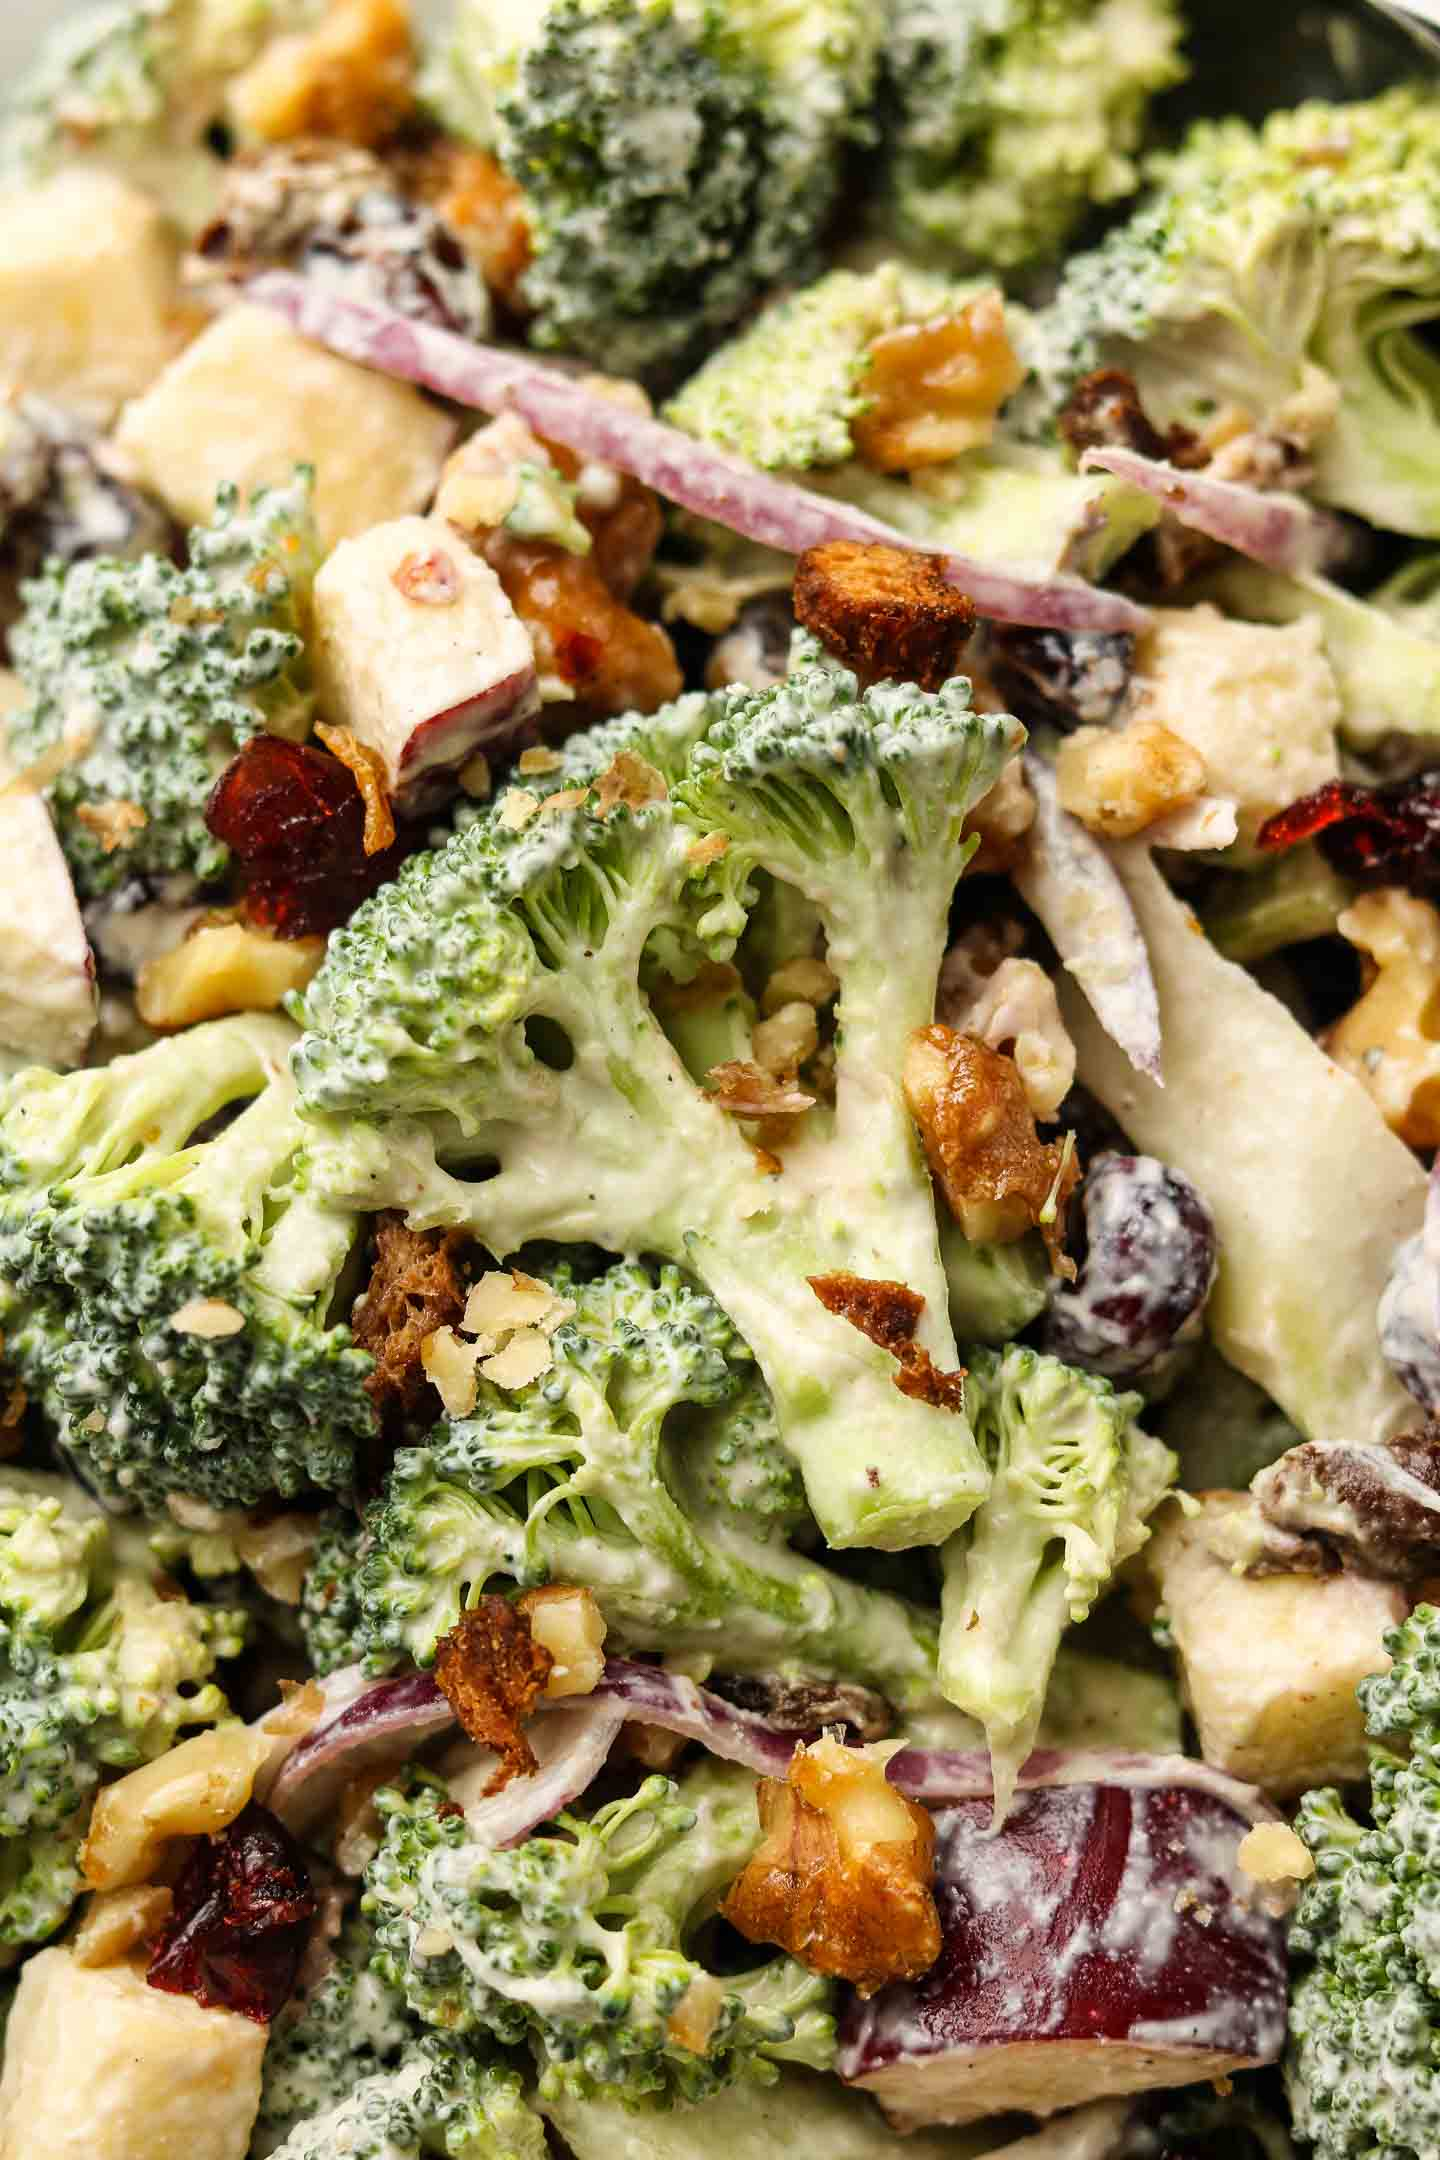 Vegan Broccoli Salad With Creamy Dressing Okonomi Kitchen